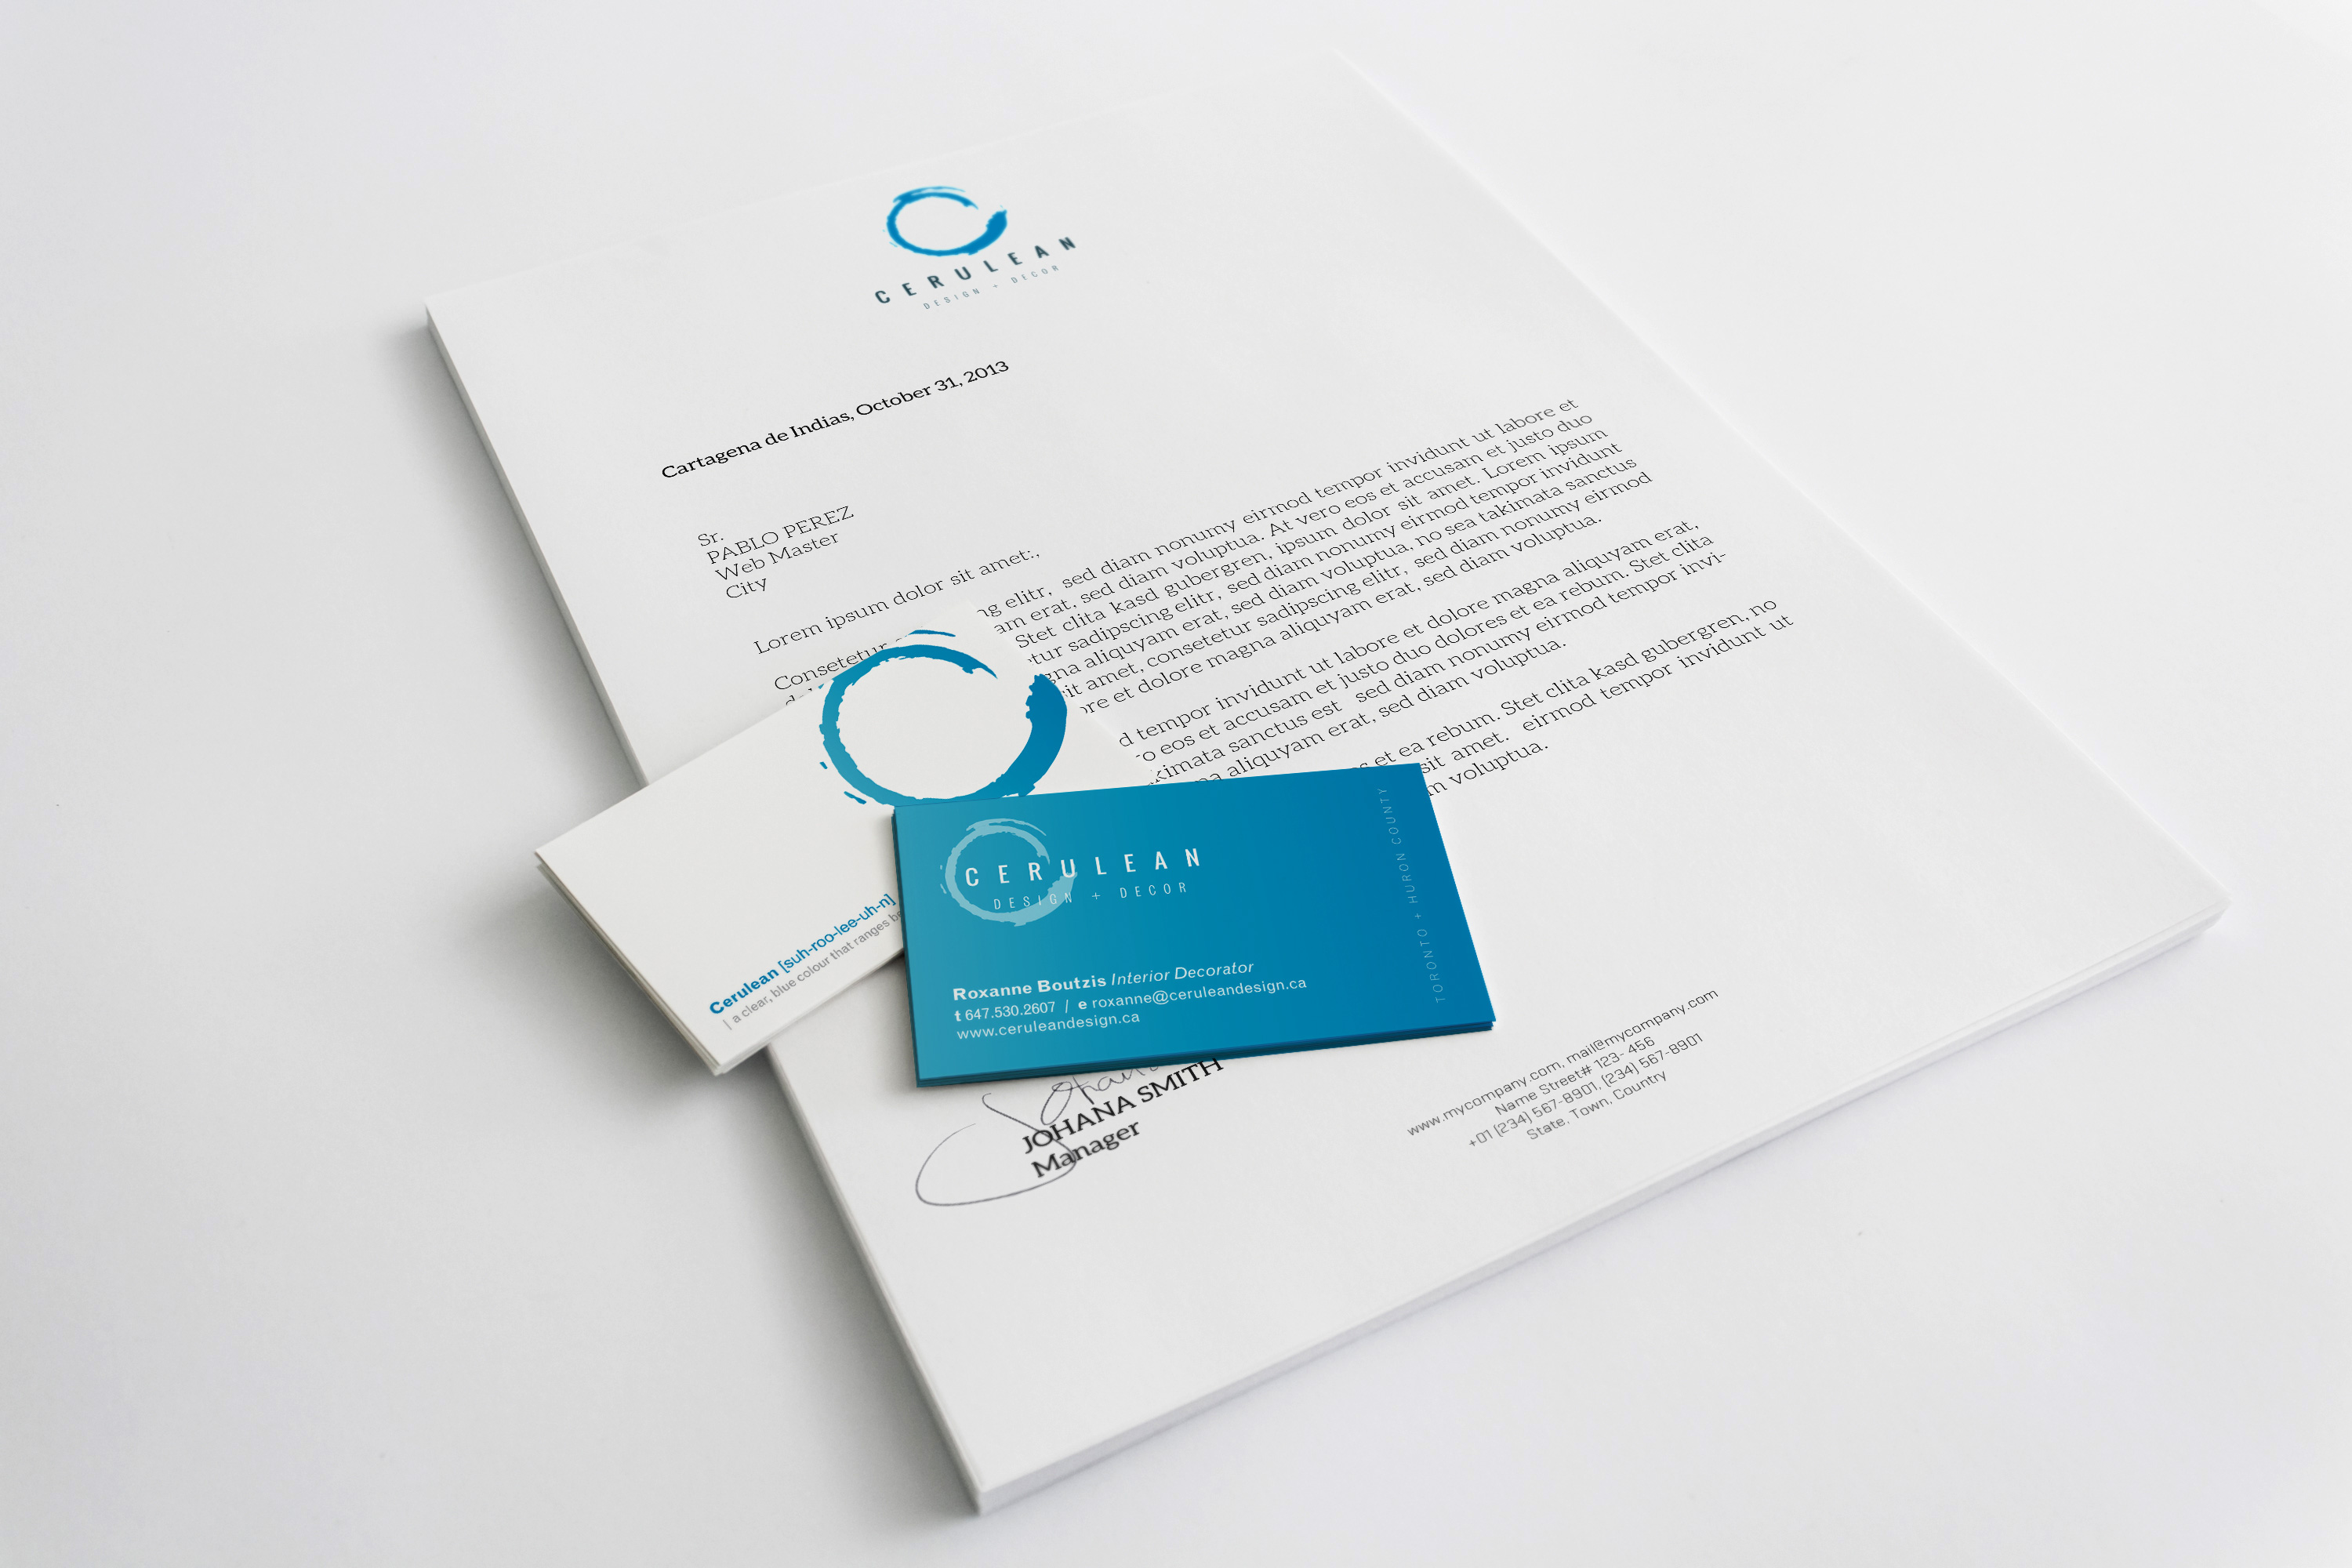 Cerulean-a4-letterhead-business-cards